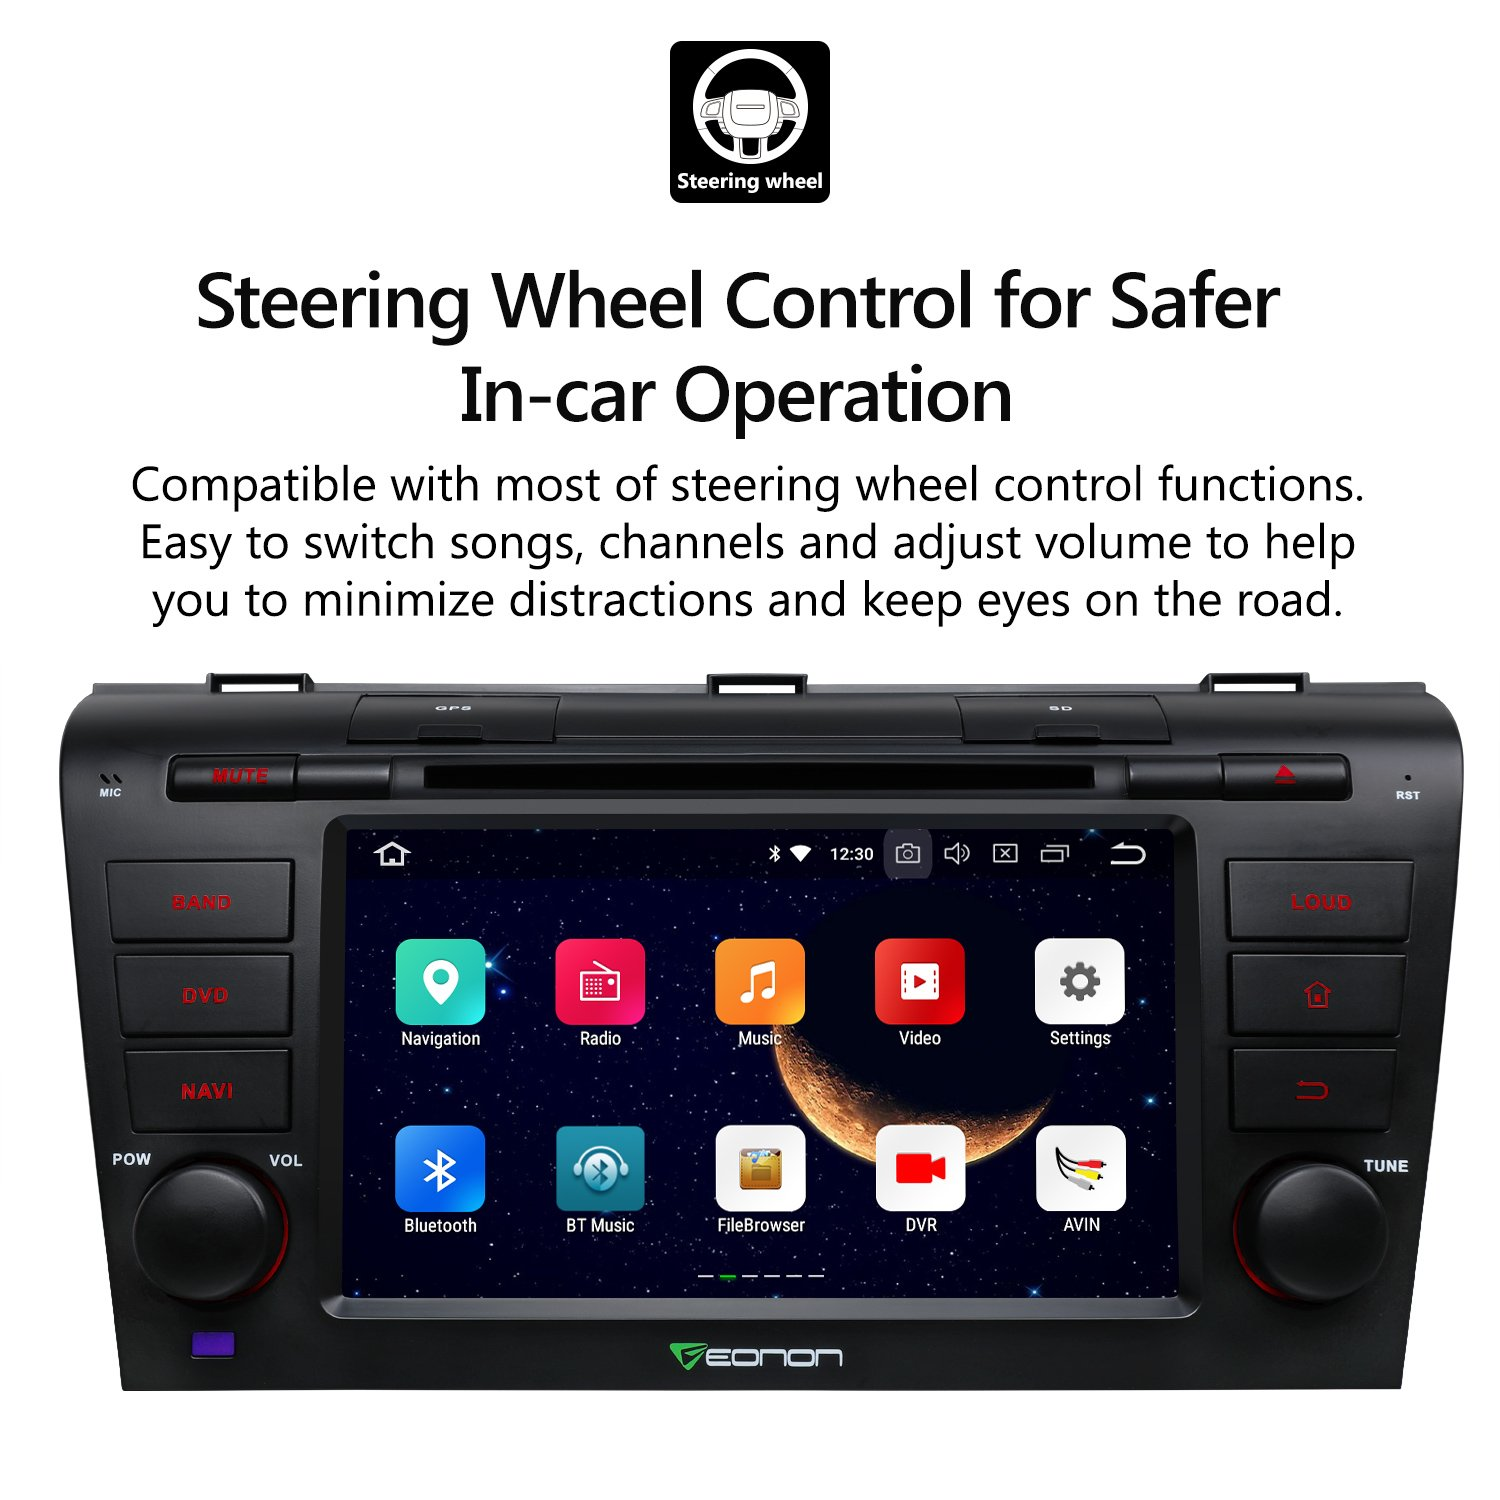 2019 Double Din Car Head Unit Eonon Android 8.1 Car Stereo Car Radio with Bluetooth 7 Inch Applicable to Ford F150 2005,2006,2007 and 2008 in Dash Touch Screen Support WiFi,Fastboot-GA9173K